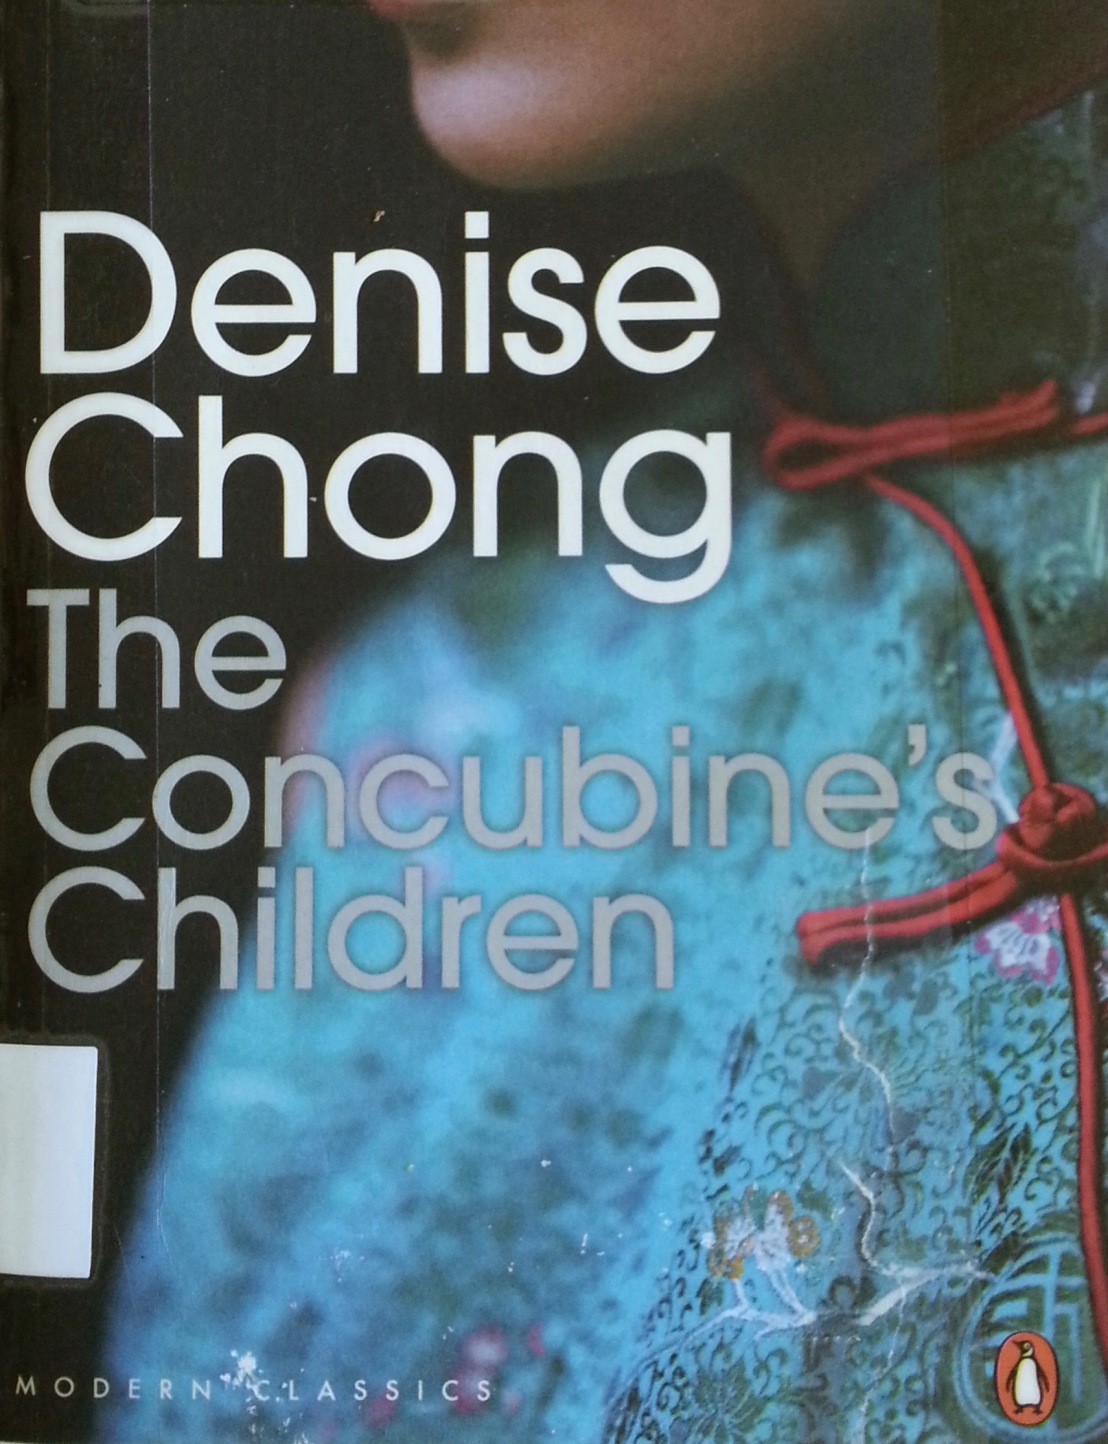 Denise Chong's — The concubine's children *****